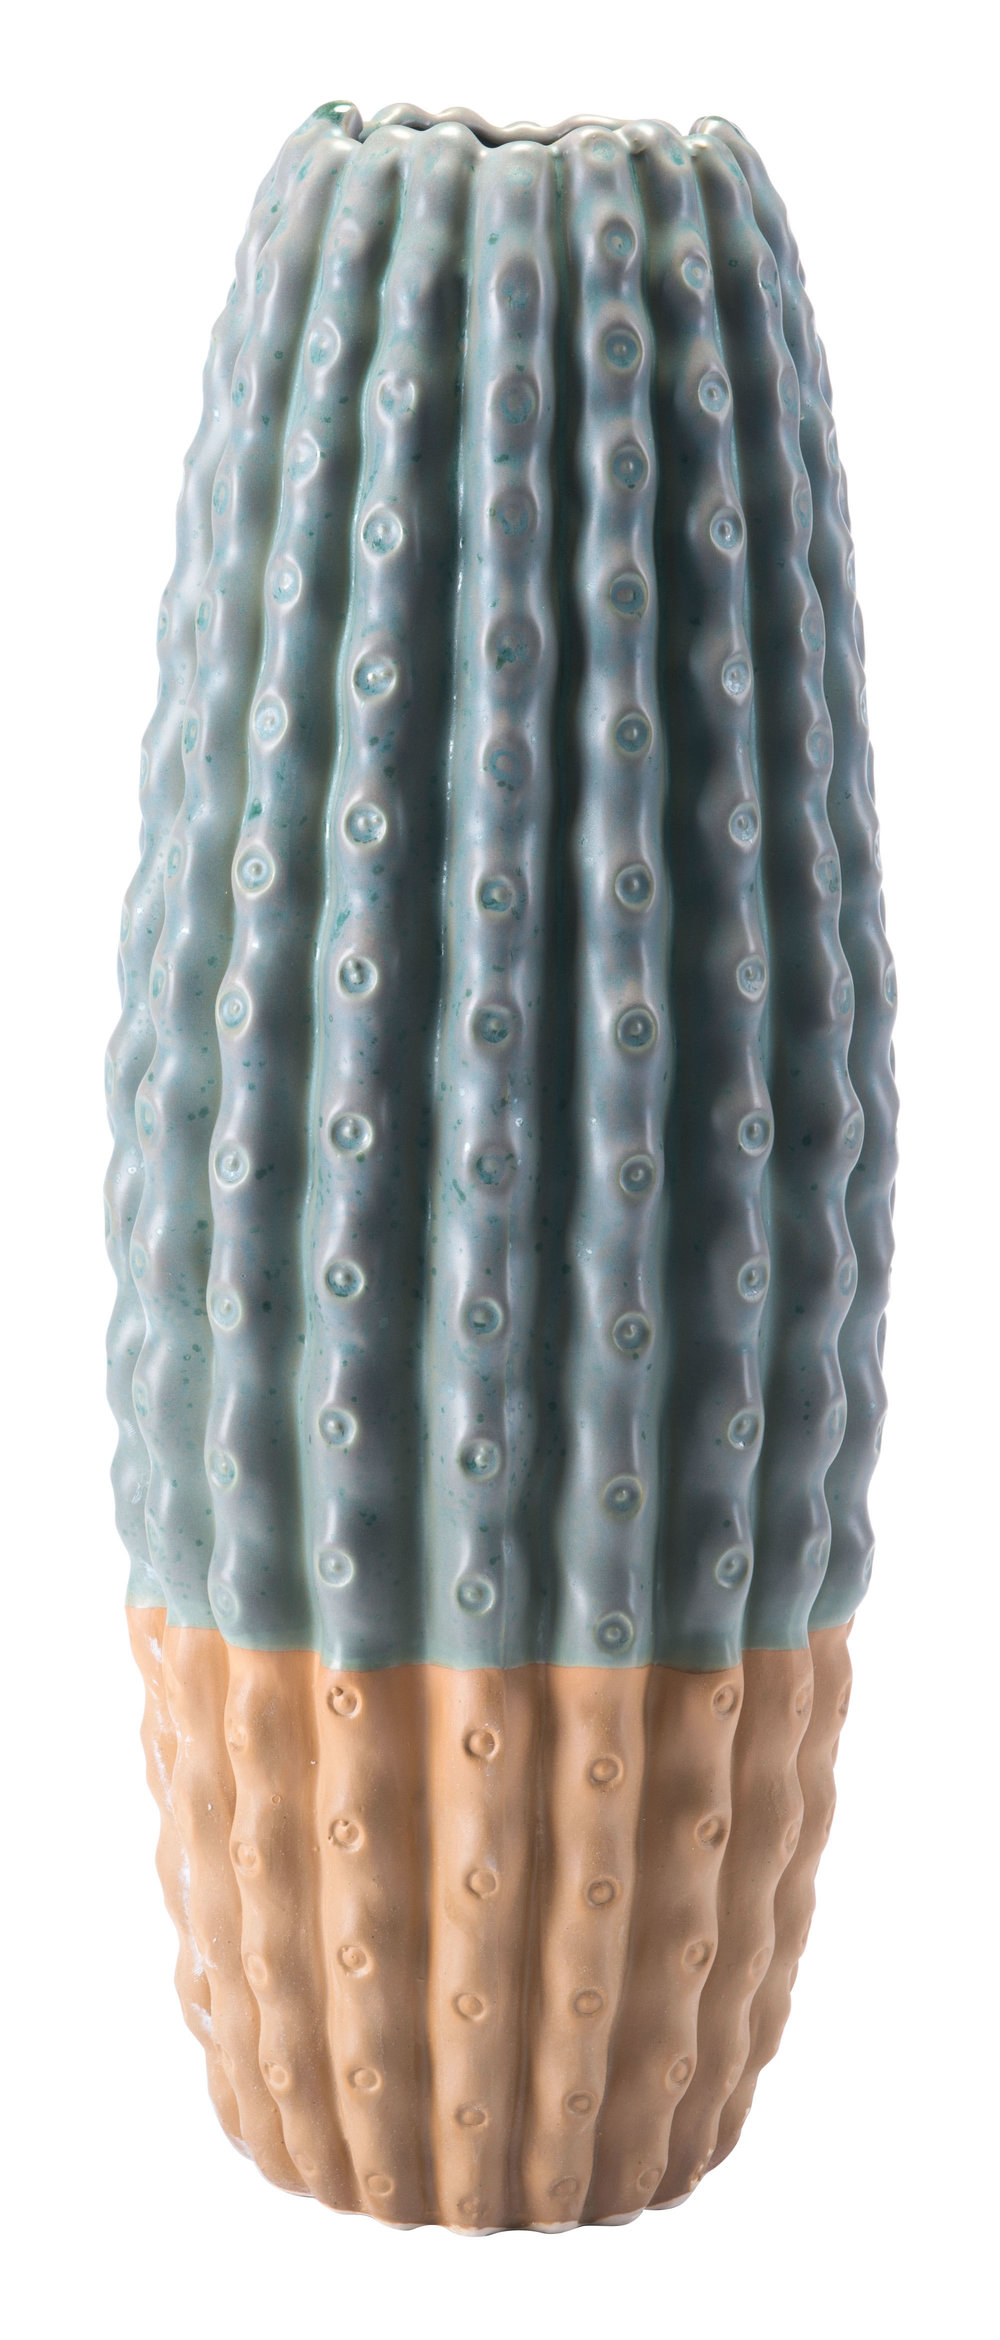 ZUO MODERN CONTEMPORARY, INC - Large Pasco Vase Green